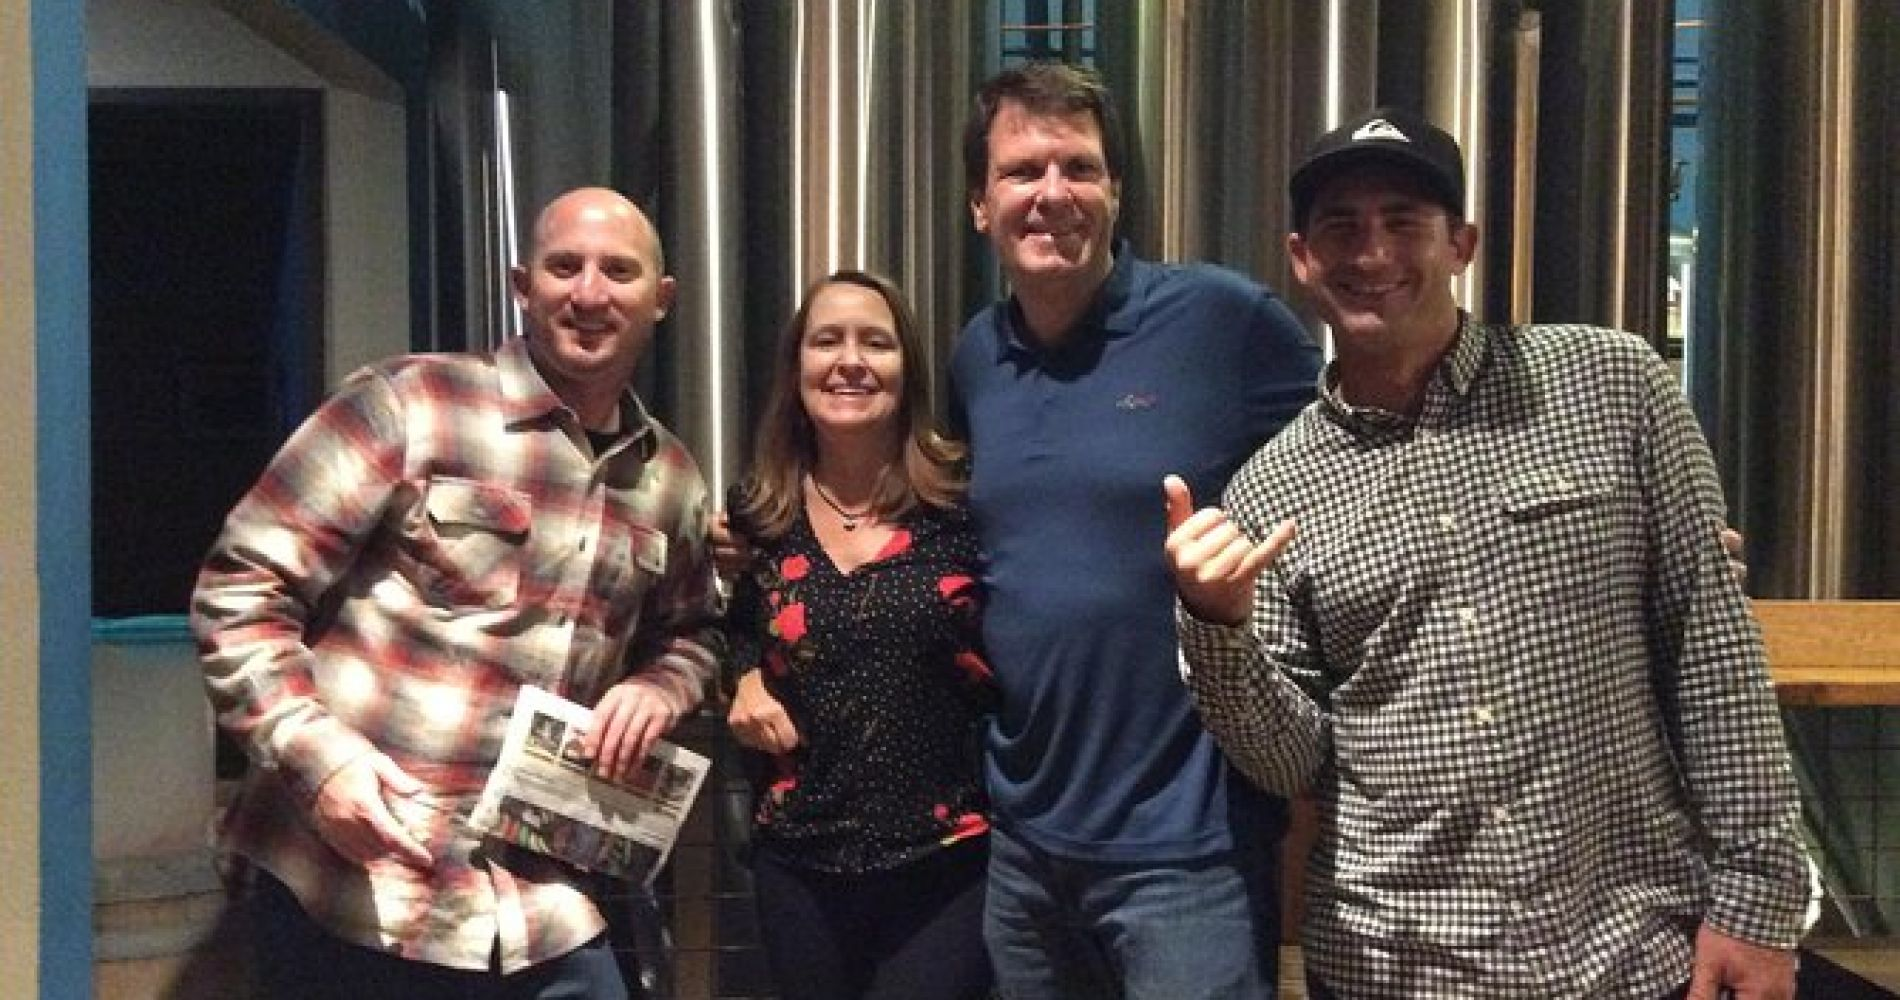 The North Orange County Craft Brewery Tour